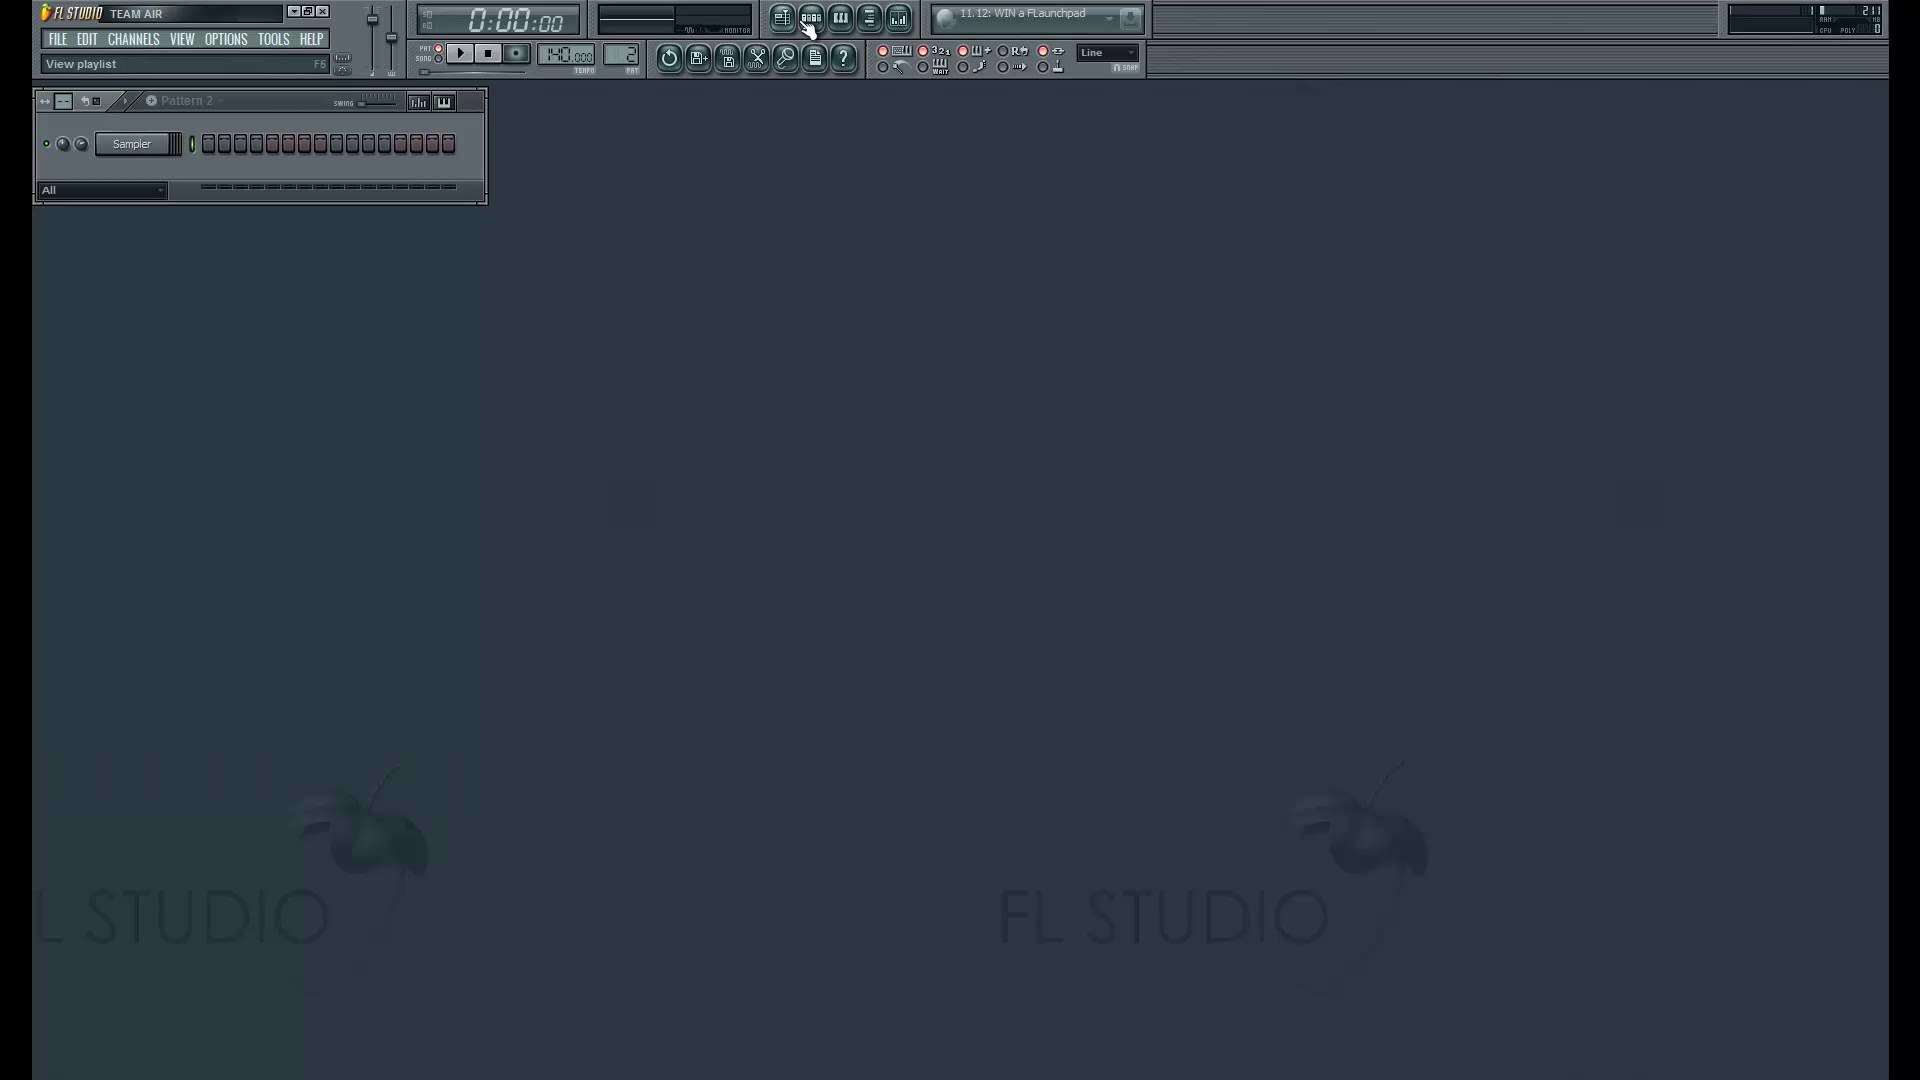 How to change your background in FL Studio 10